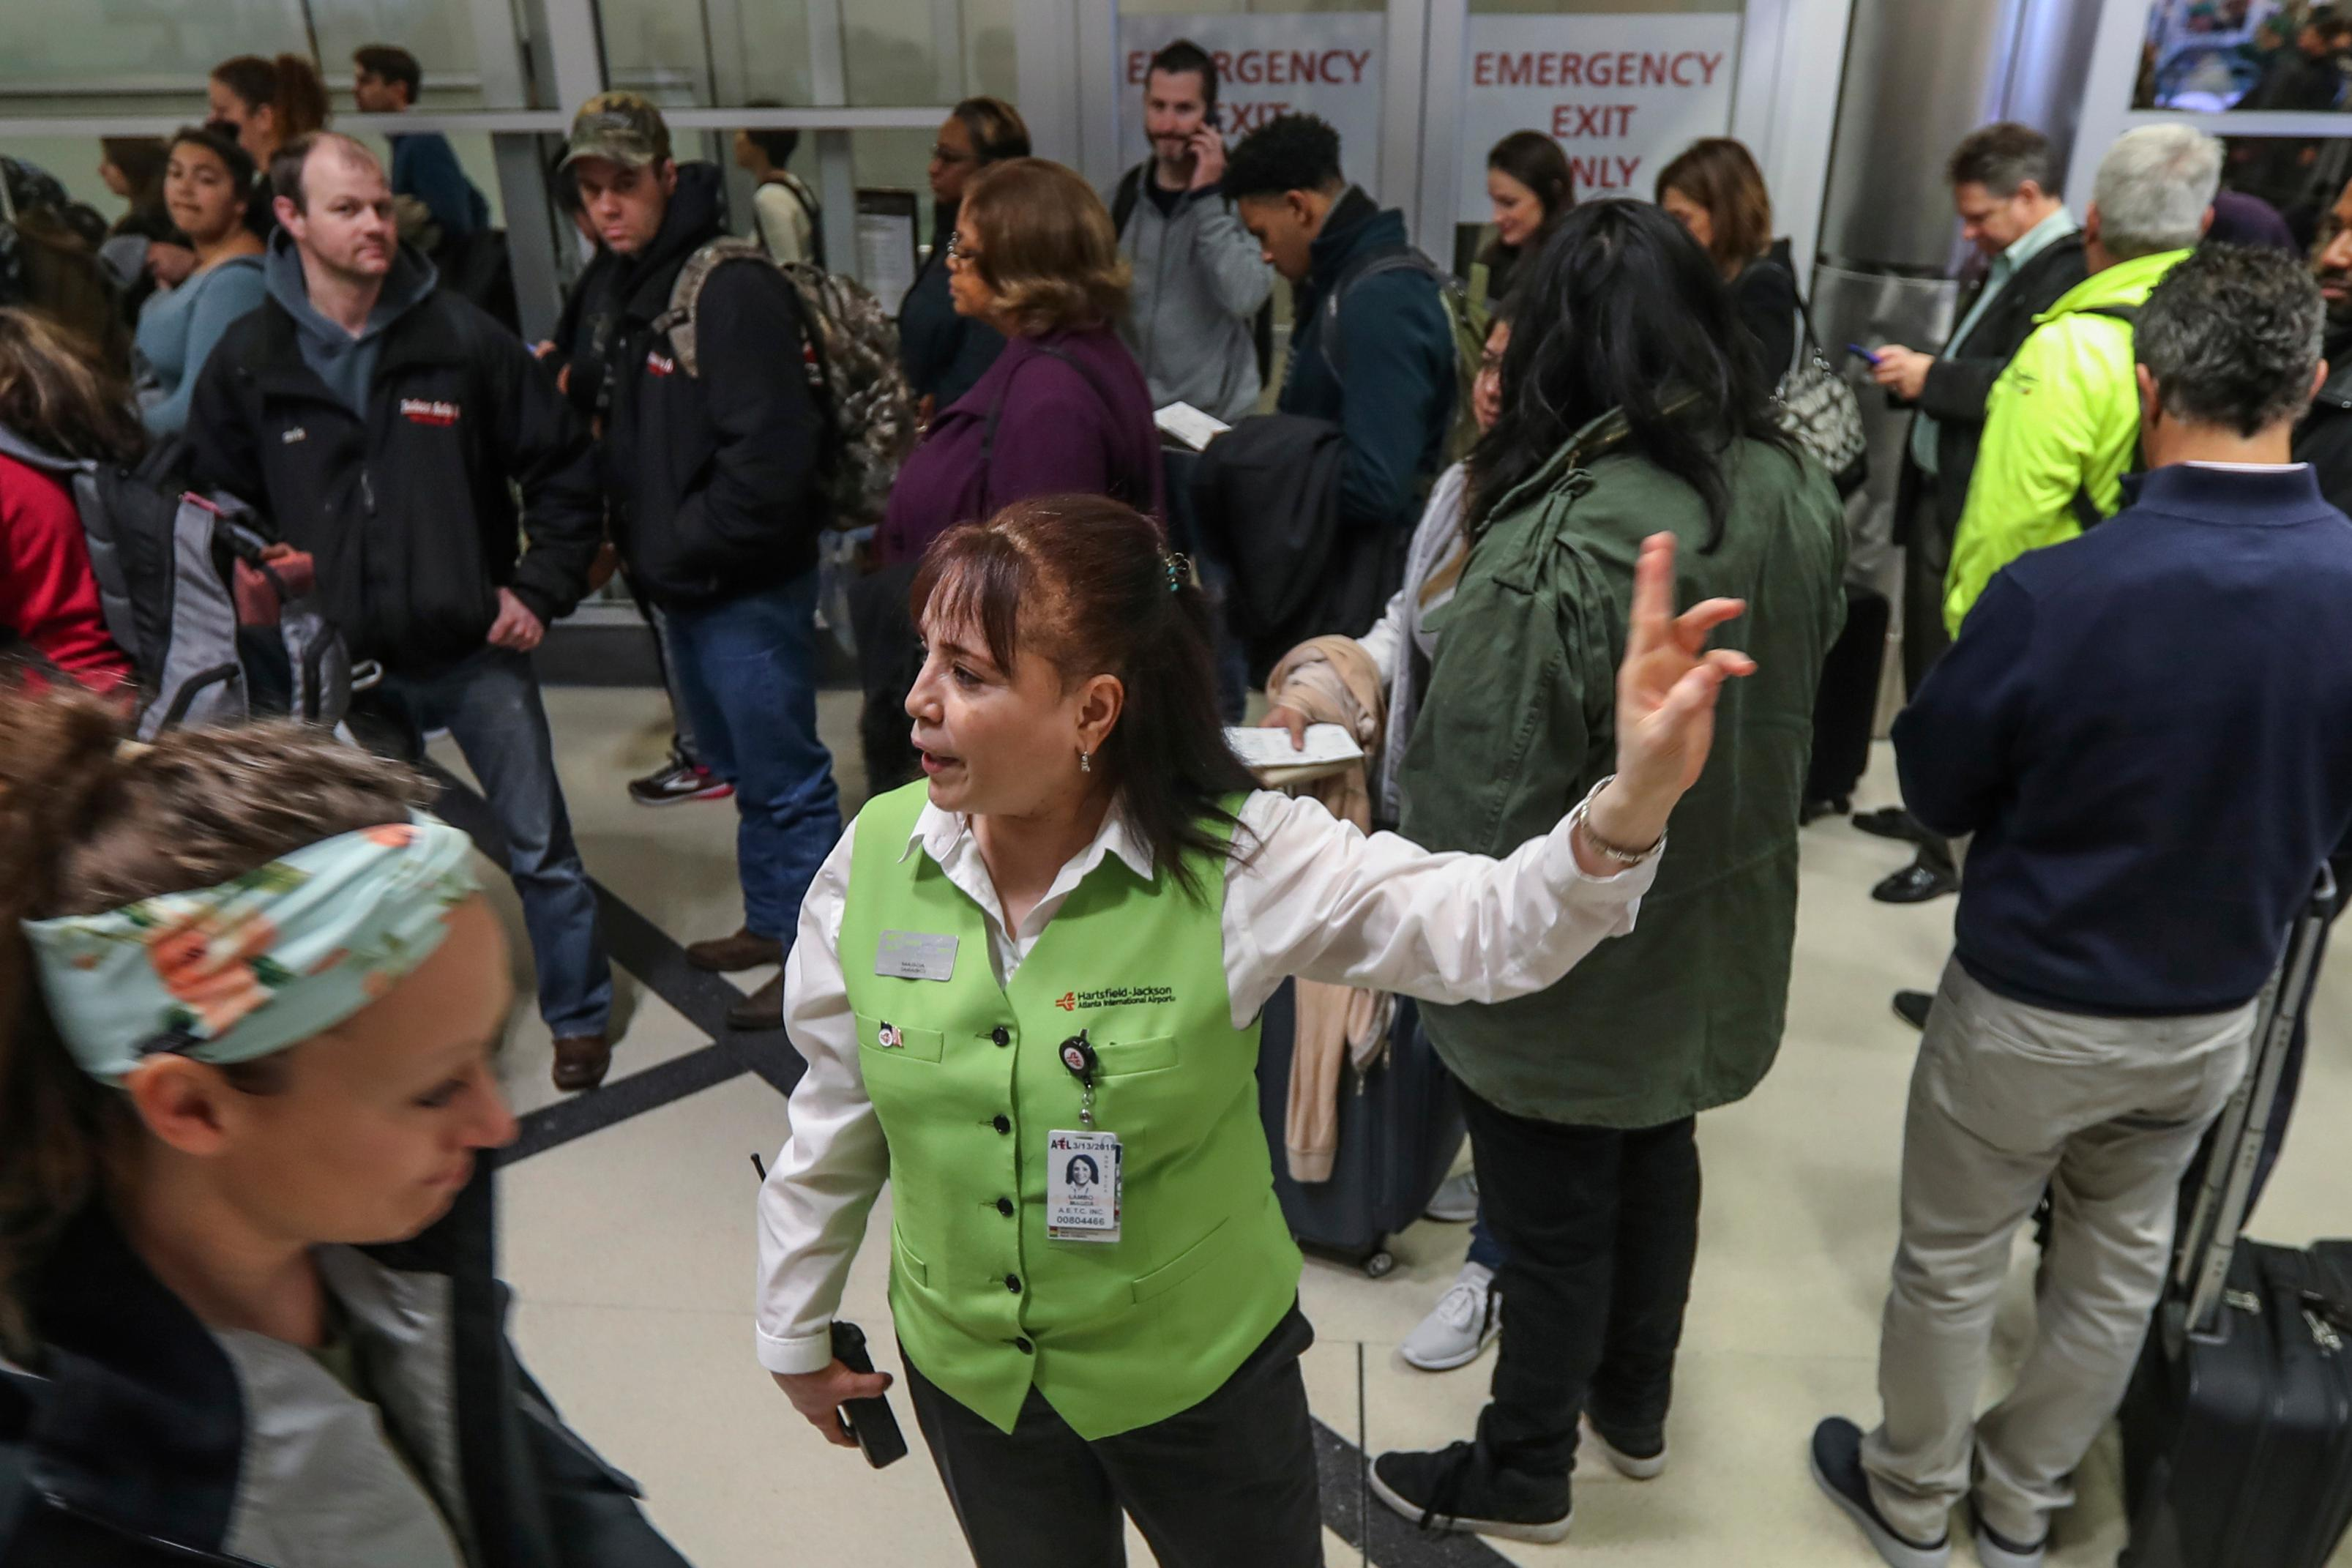 Customer Service representative Magda Lambo, center, directs travelers as security lines at Hartsfield-Jackson International Airport in Atlanta stretch more than an hour long amid the partial federal shutdown, causing some travelers to miss flights, Monday morning, Jan. 14, 2019. The long lines signaled{ }staffing shortages{ }at security checkpoints, as TSA officers have been working without pay since the federal shutdown began Dec. 22. (John Spink/Atlanta Journal-Constitution via AP)